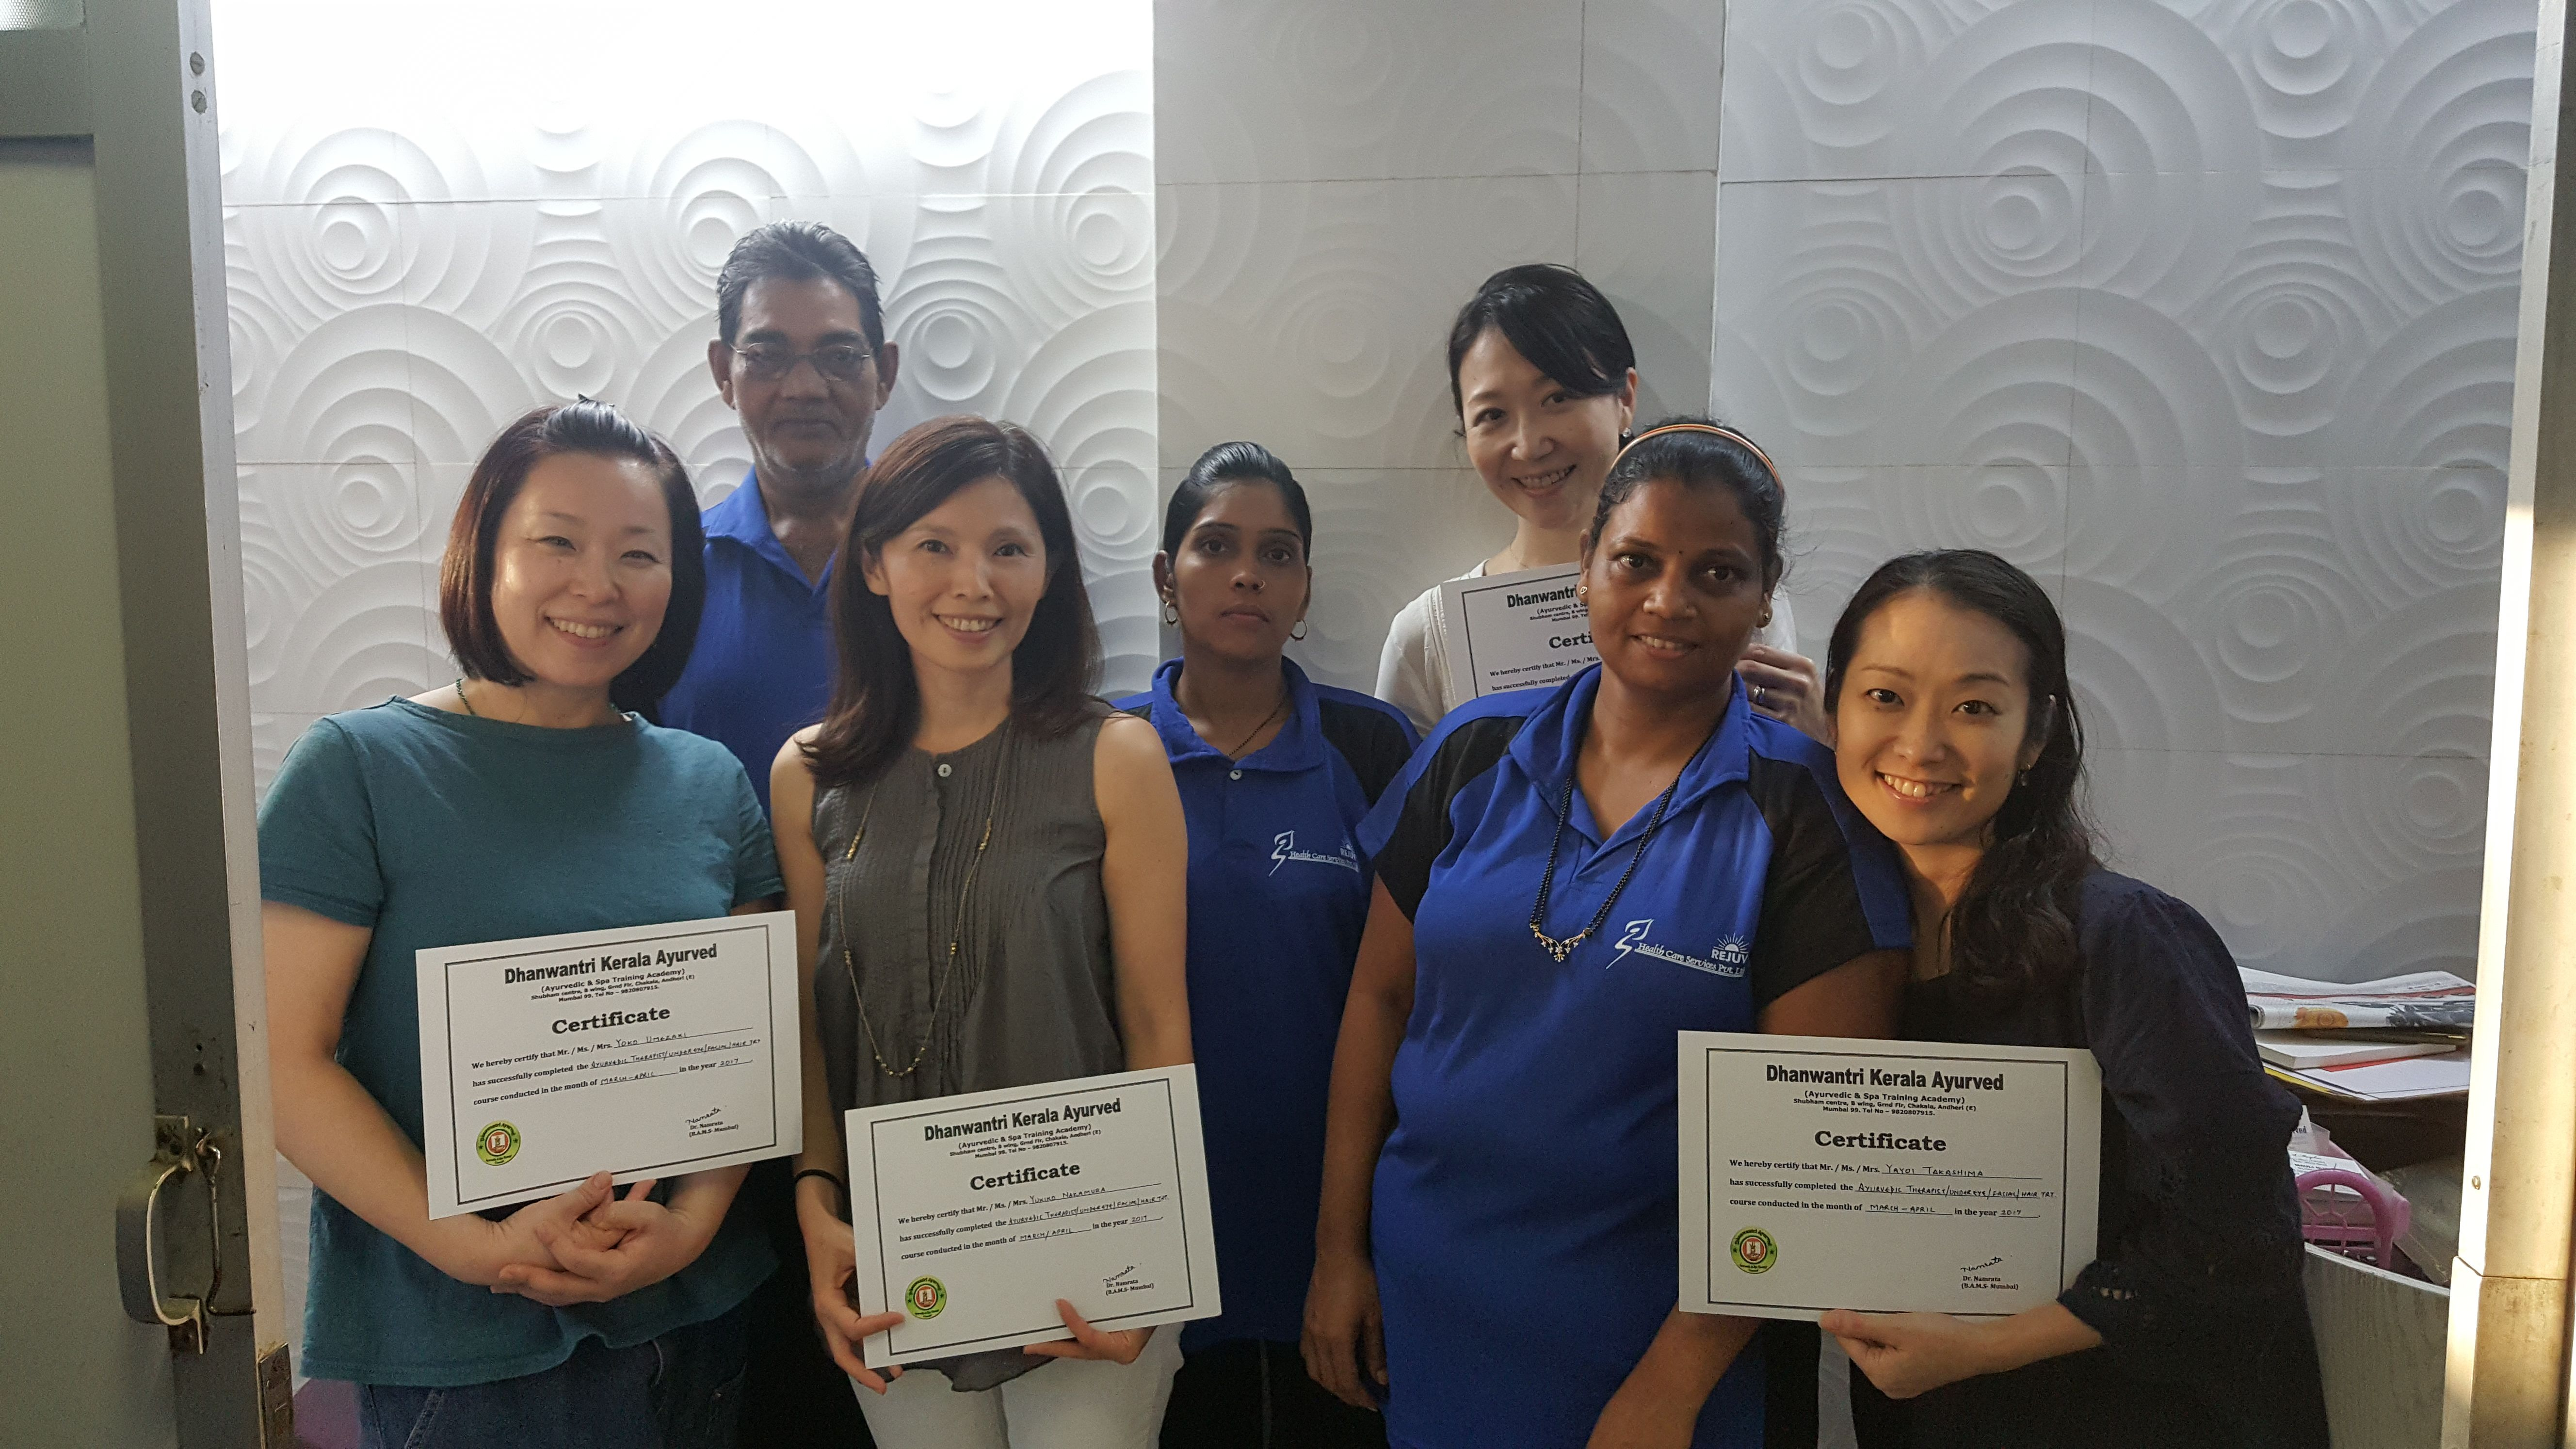 Massage Training Course for Individuals/Health Professionals